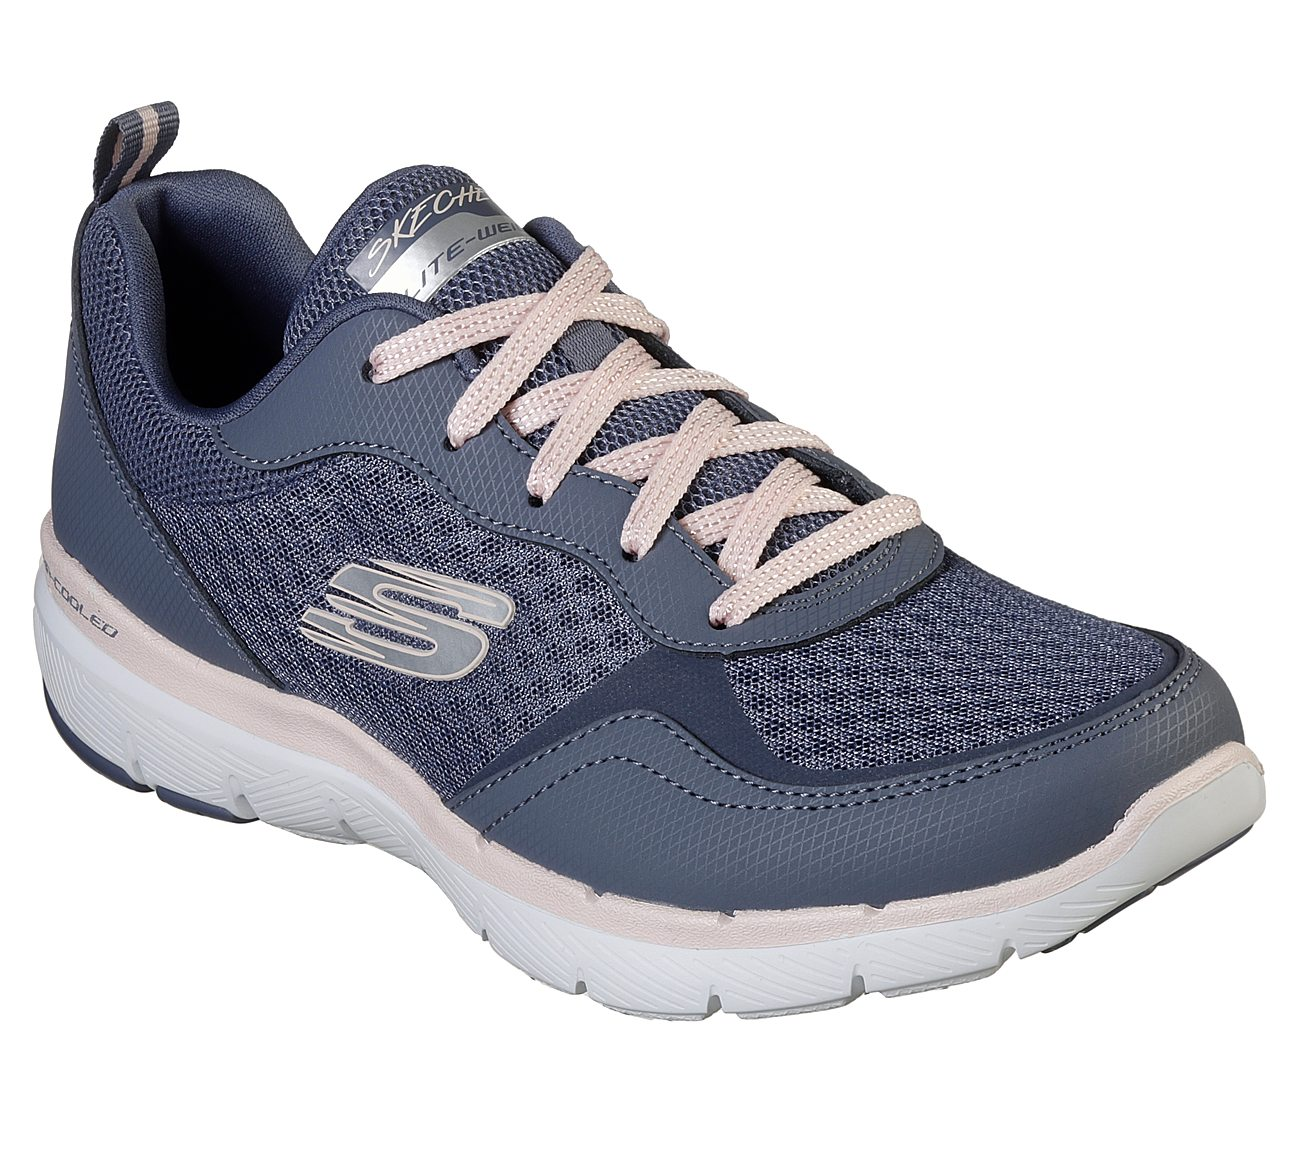 45ec518ef0d Buy SKECHERS Flex Appeal 3.0 - Go Forward Flex Appeal Shoes only £63.00